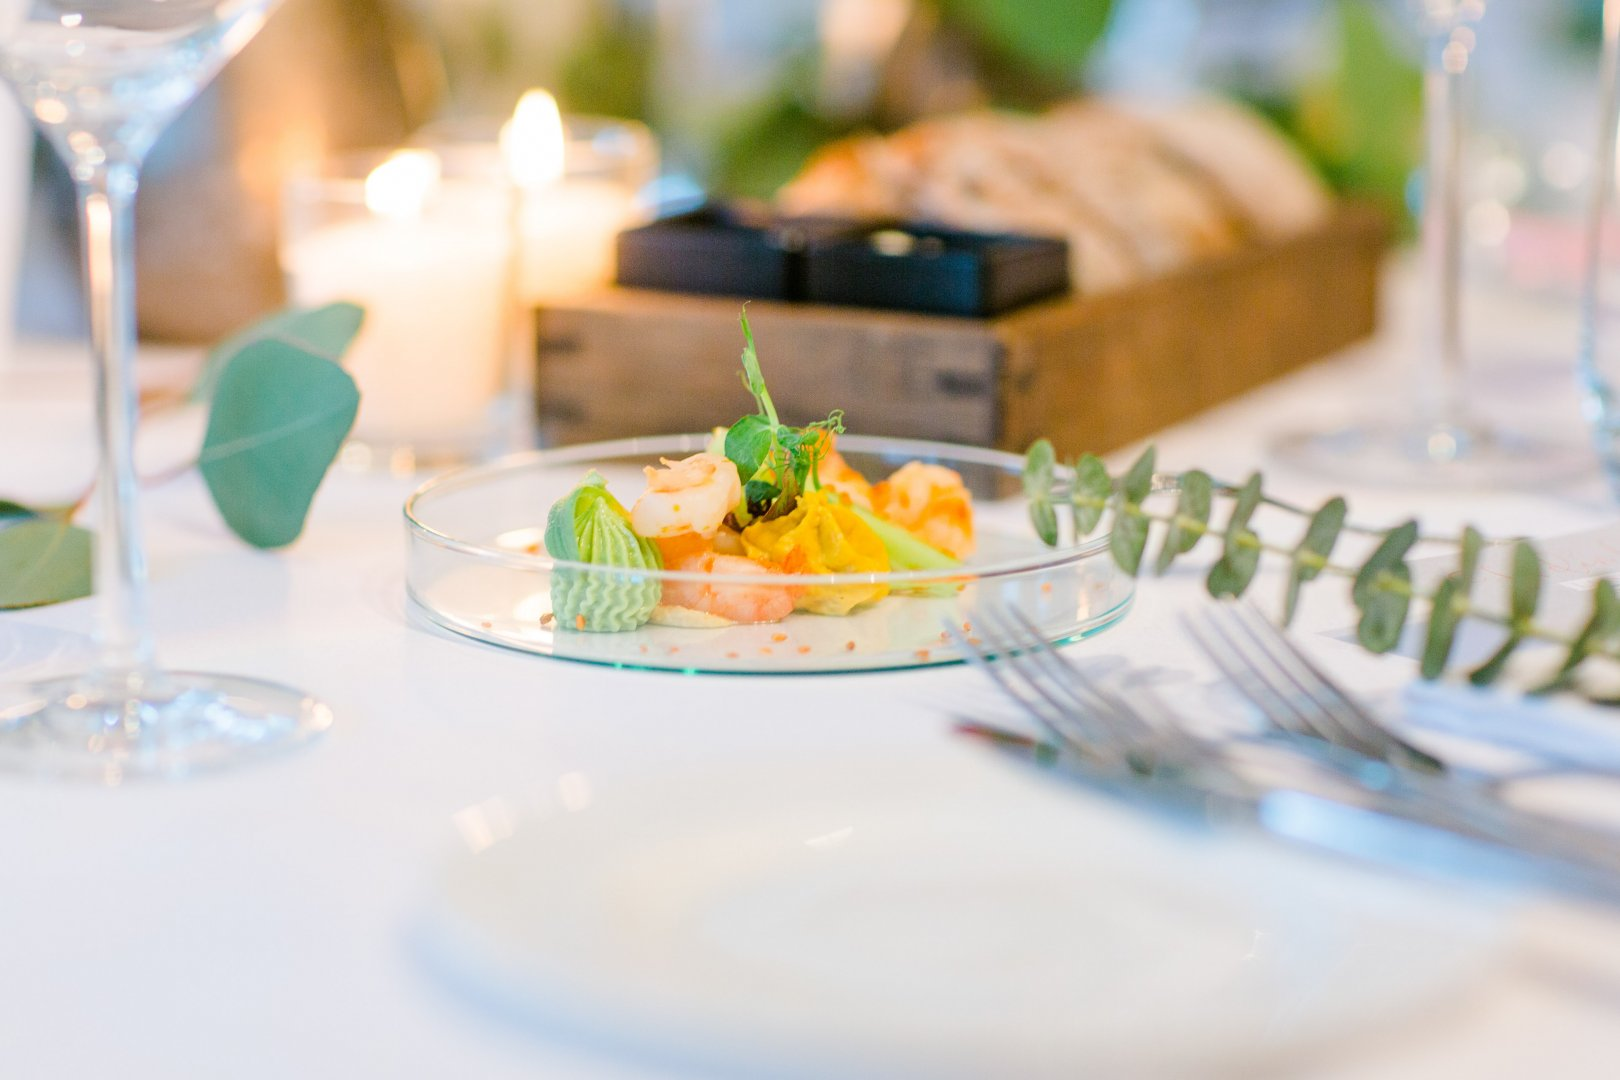 Brunch Food Meal À la carte food Dish Rehearsal dinner Table Cuisine Restaurant Finger food Banquet Culinary art Hors d'oeuvre Tableware Breakfast Garnish appetizer Ingredient Lunch Party